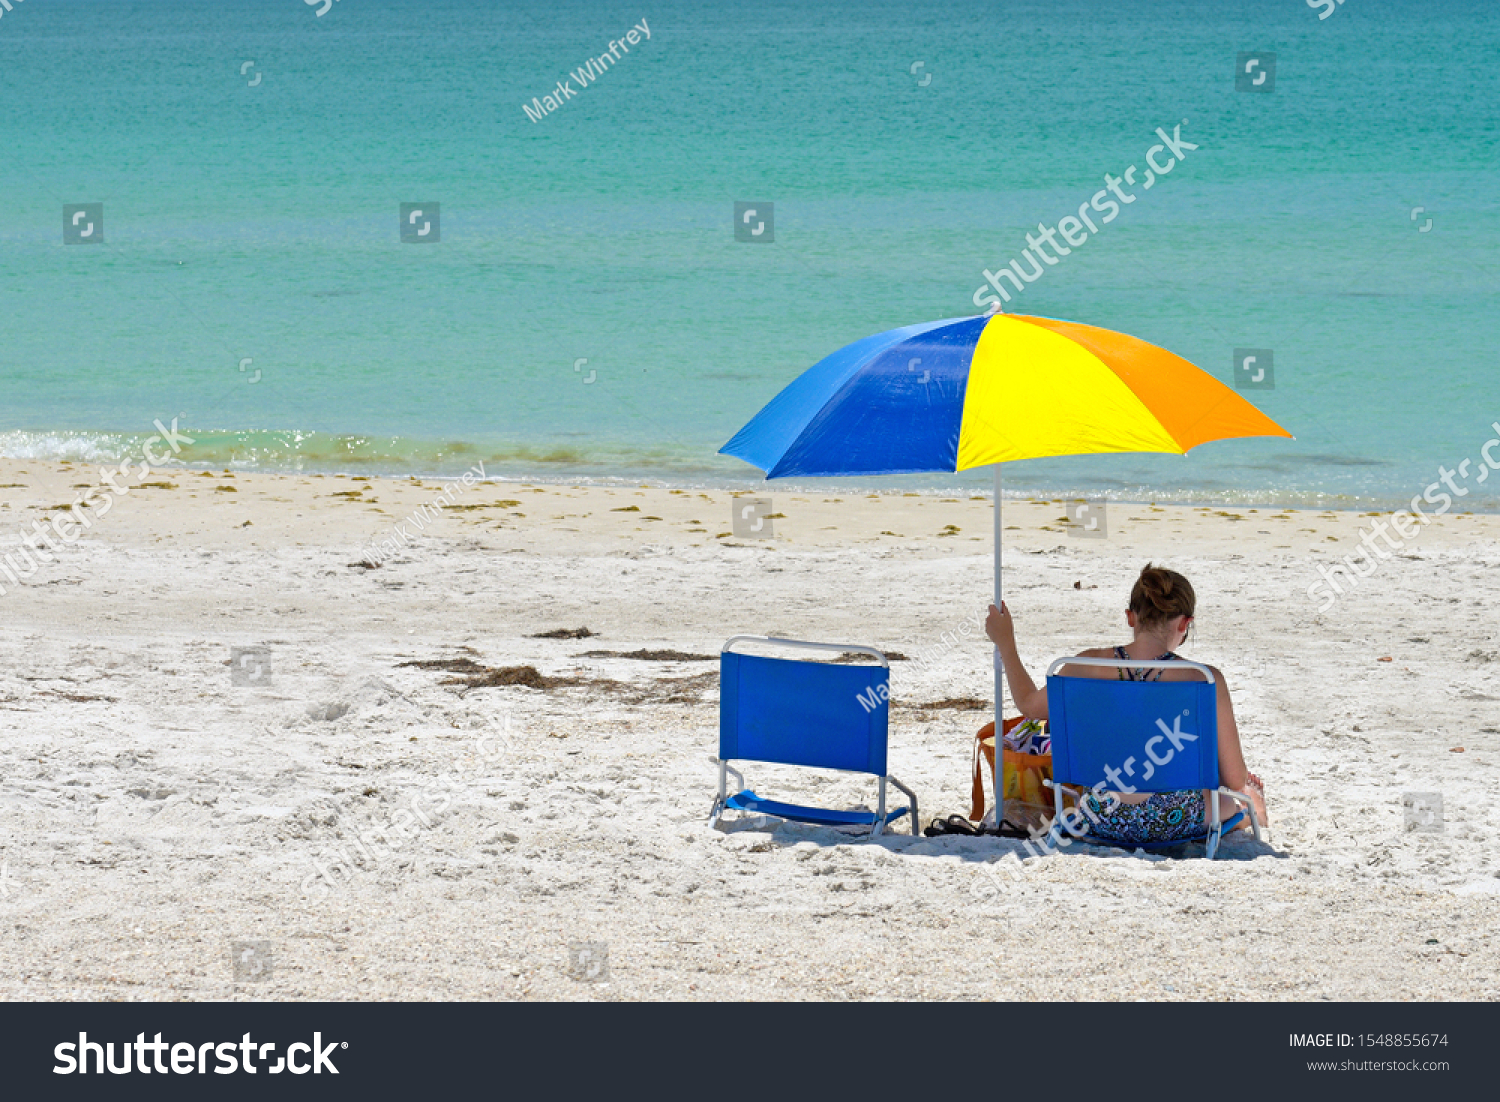 Unidentifiable Woman Sitting in the Shade of a Colorful Beach Umbrella while Enjoying a Relaxing Day at the Beach